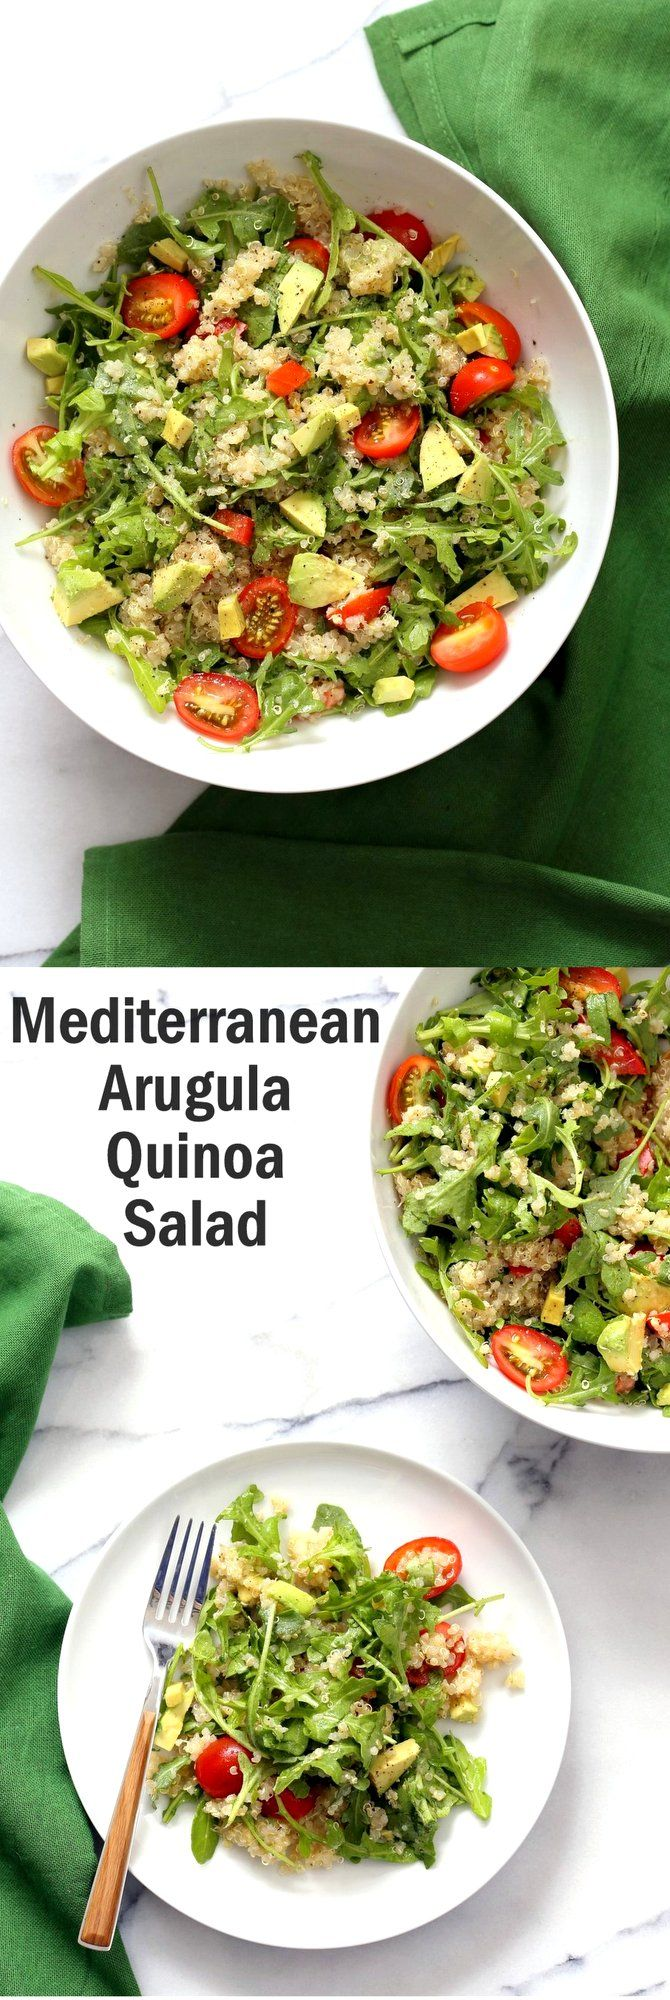 Mediterranean Quinoa Salad with Arugula, Avocado